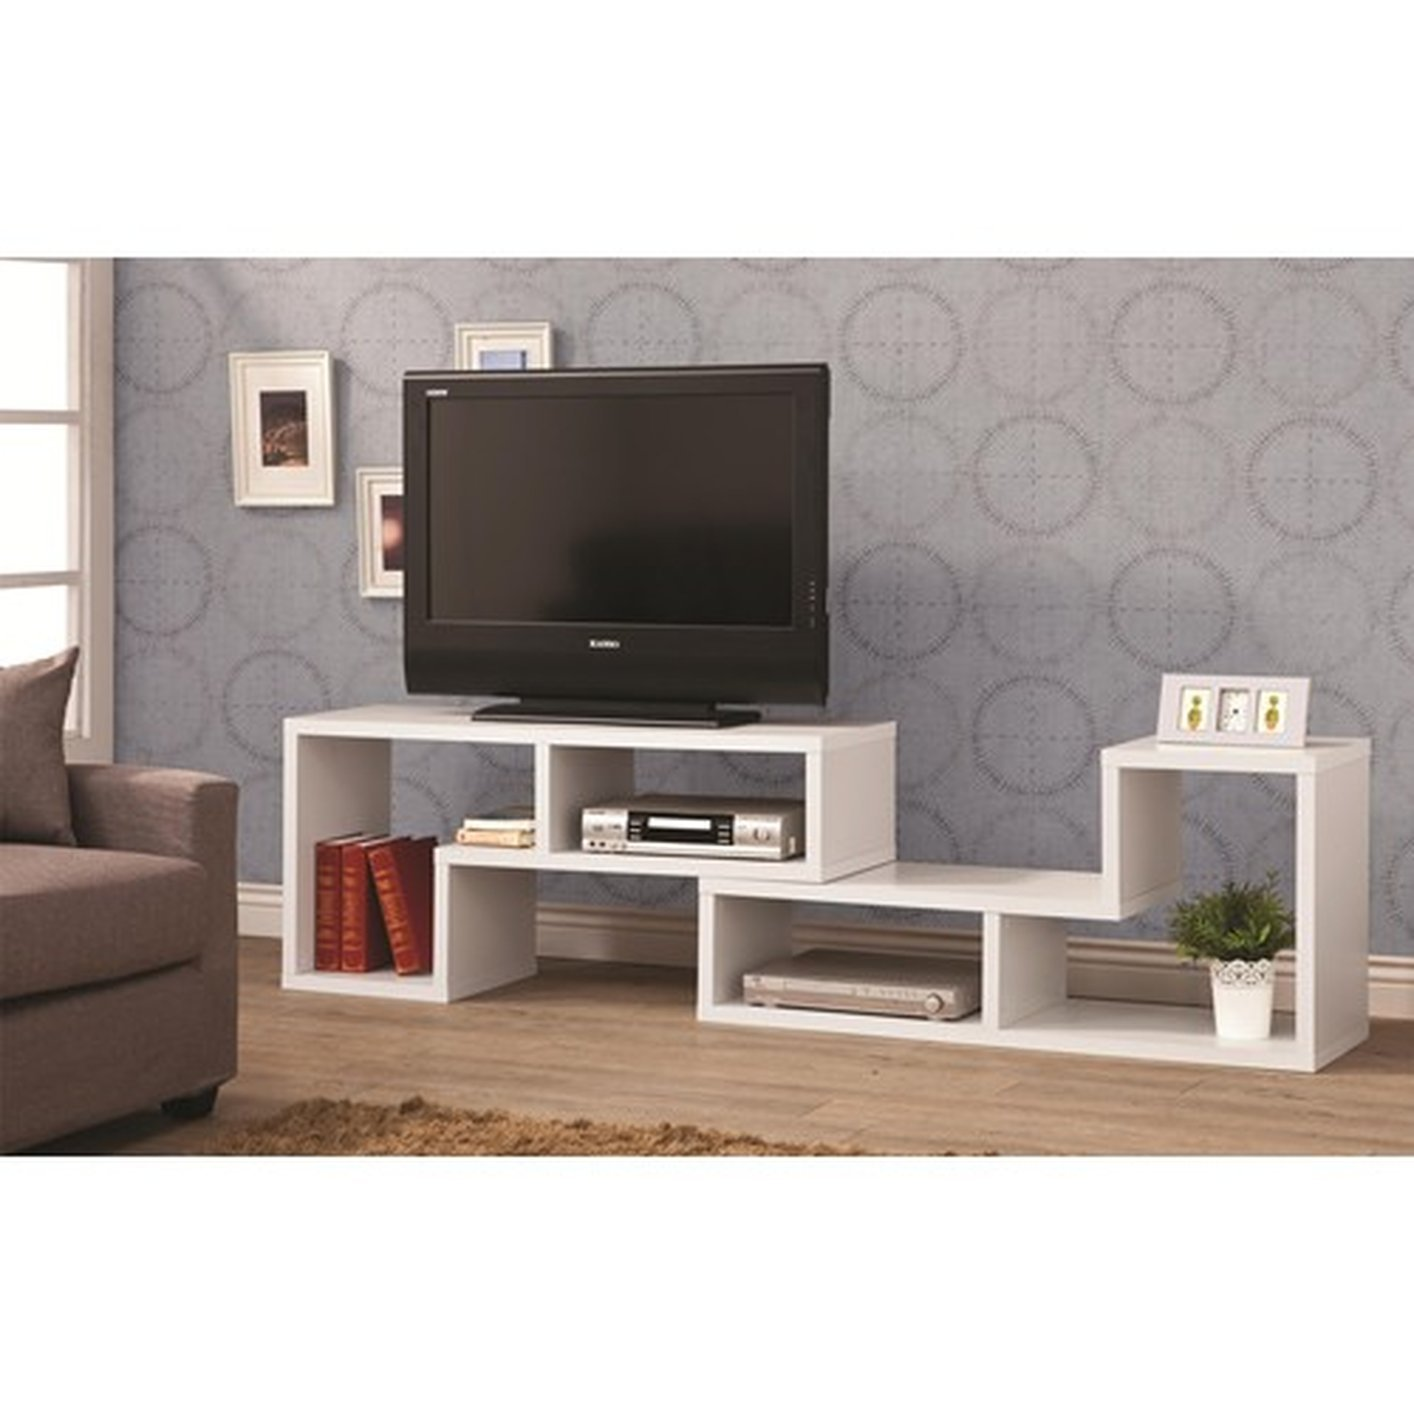 Coaster 800330 White Wood Tv Stand Steal A Sofa